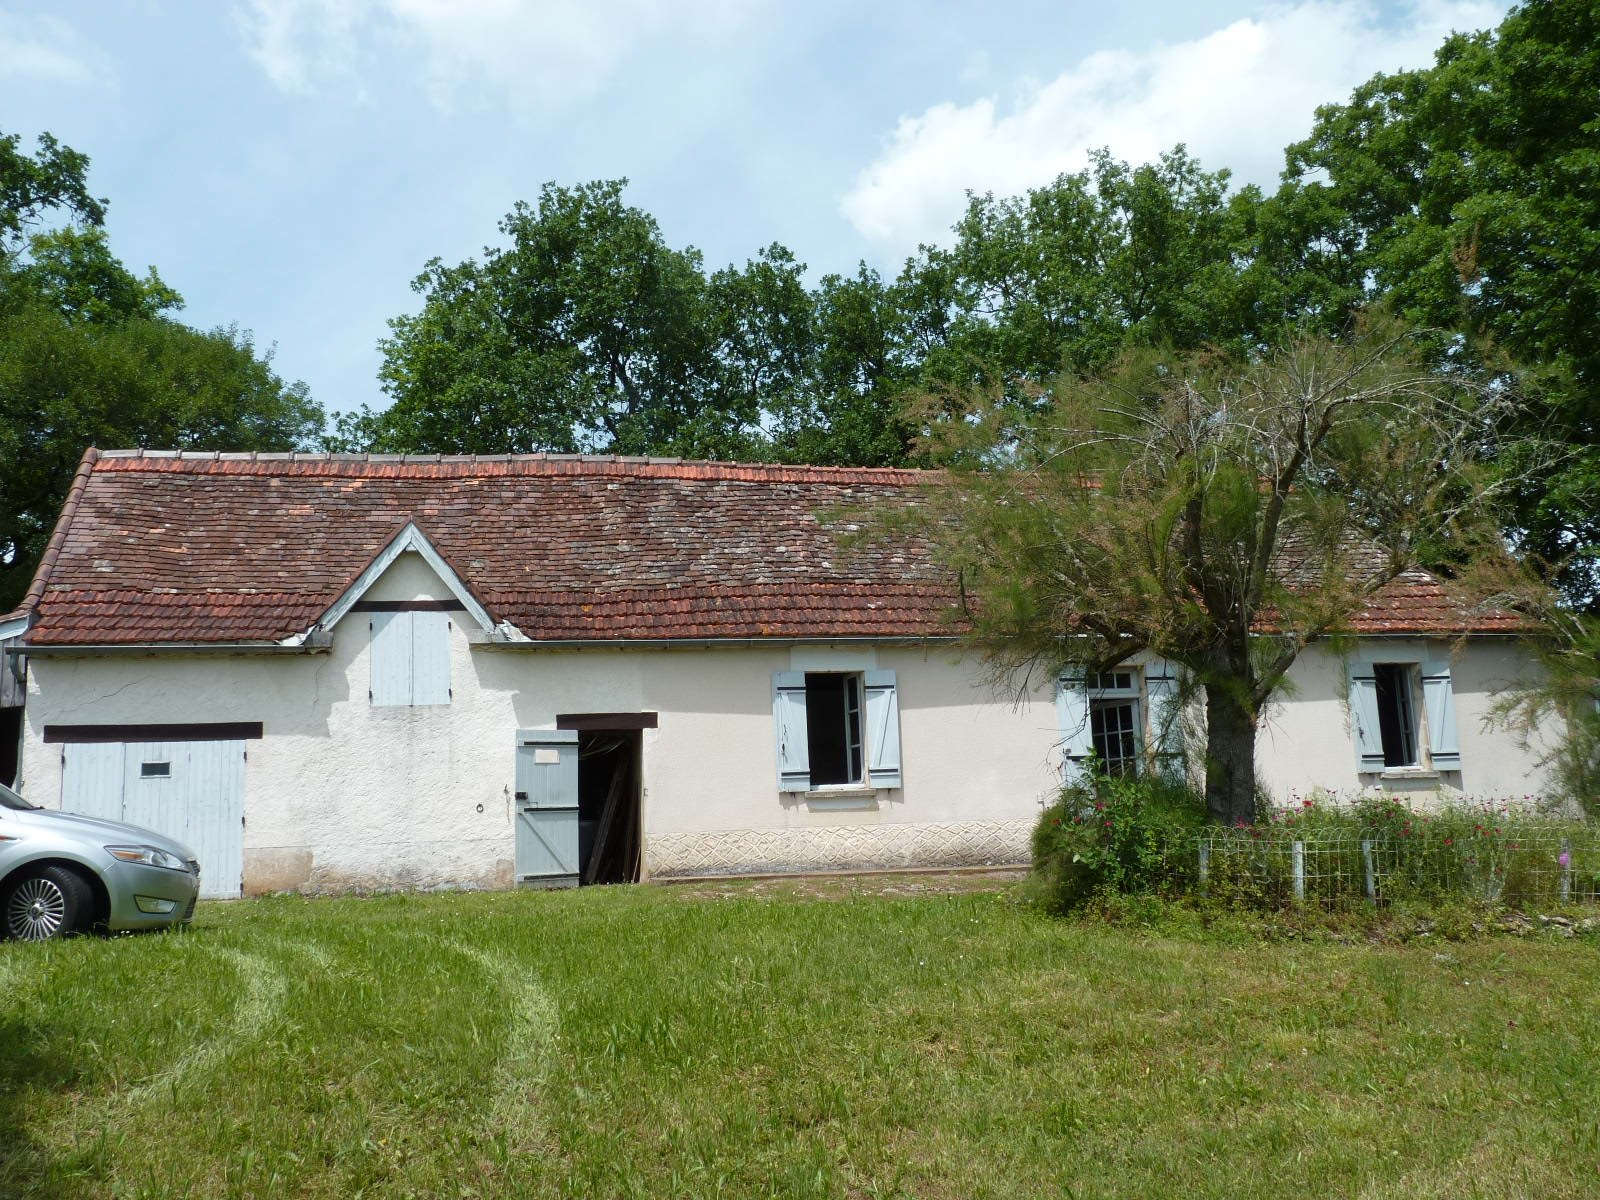 Stone house with 2 bedrooms to renovate and possibly enlarge, on 2 acres with stone barn